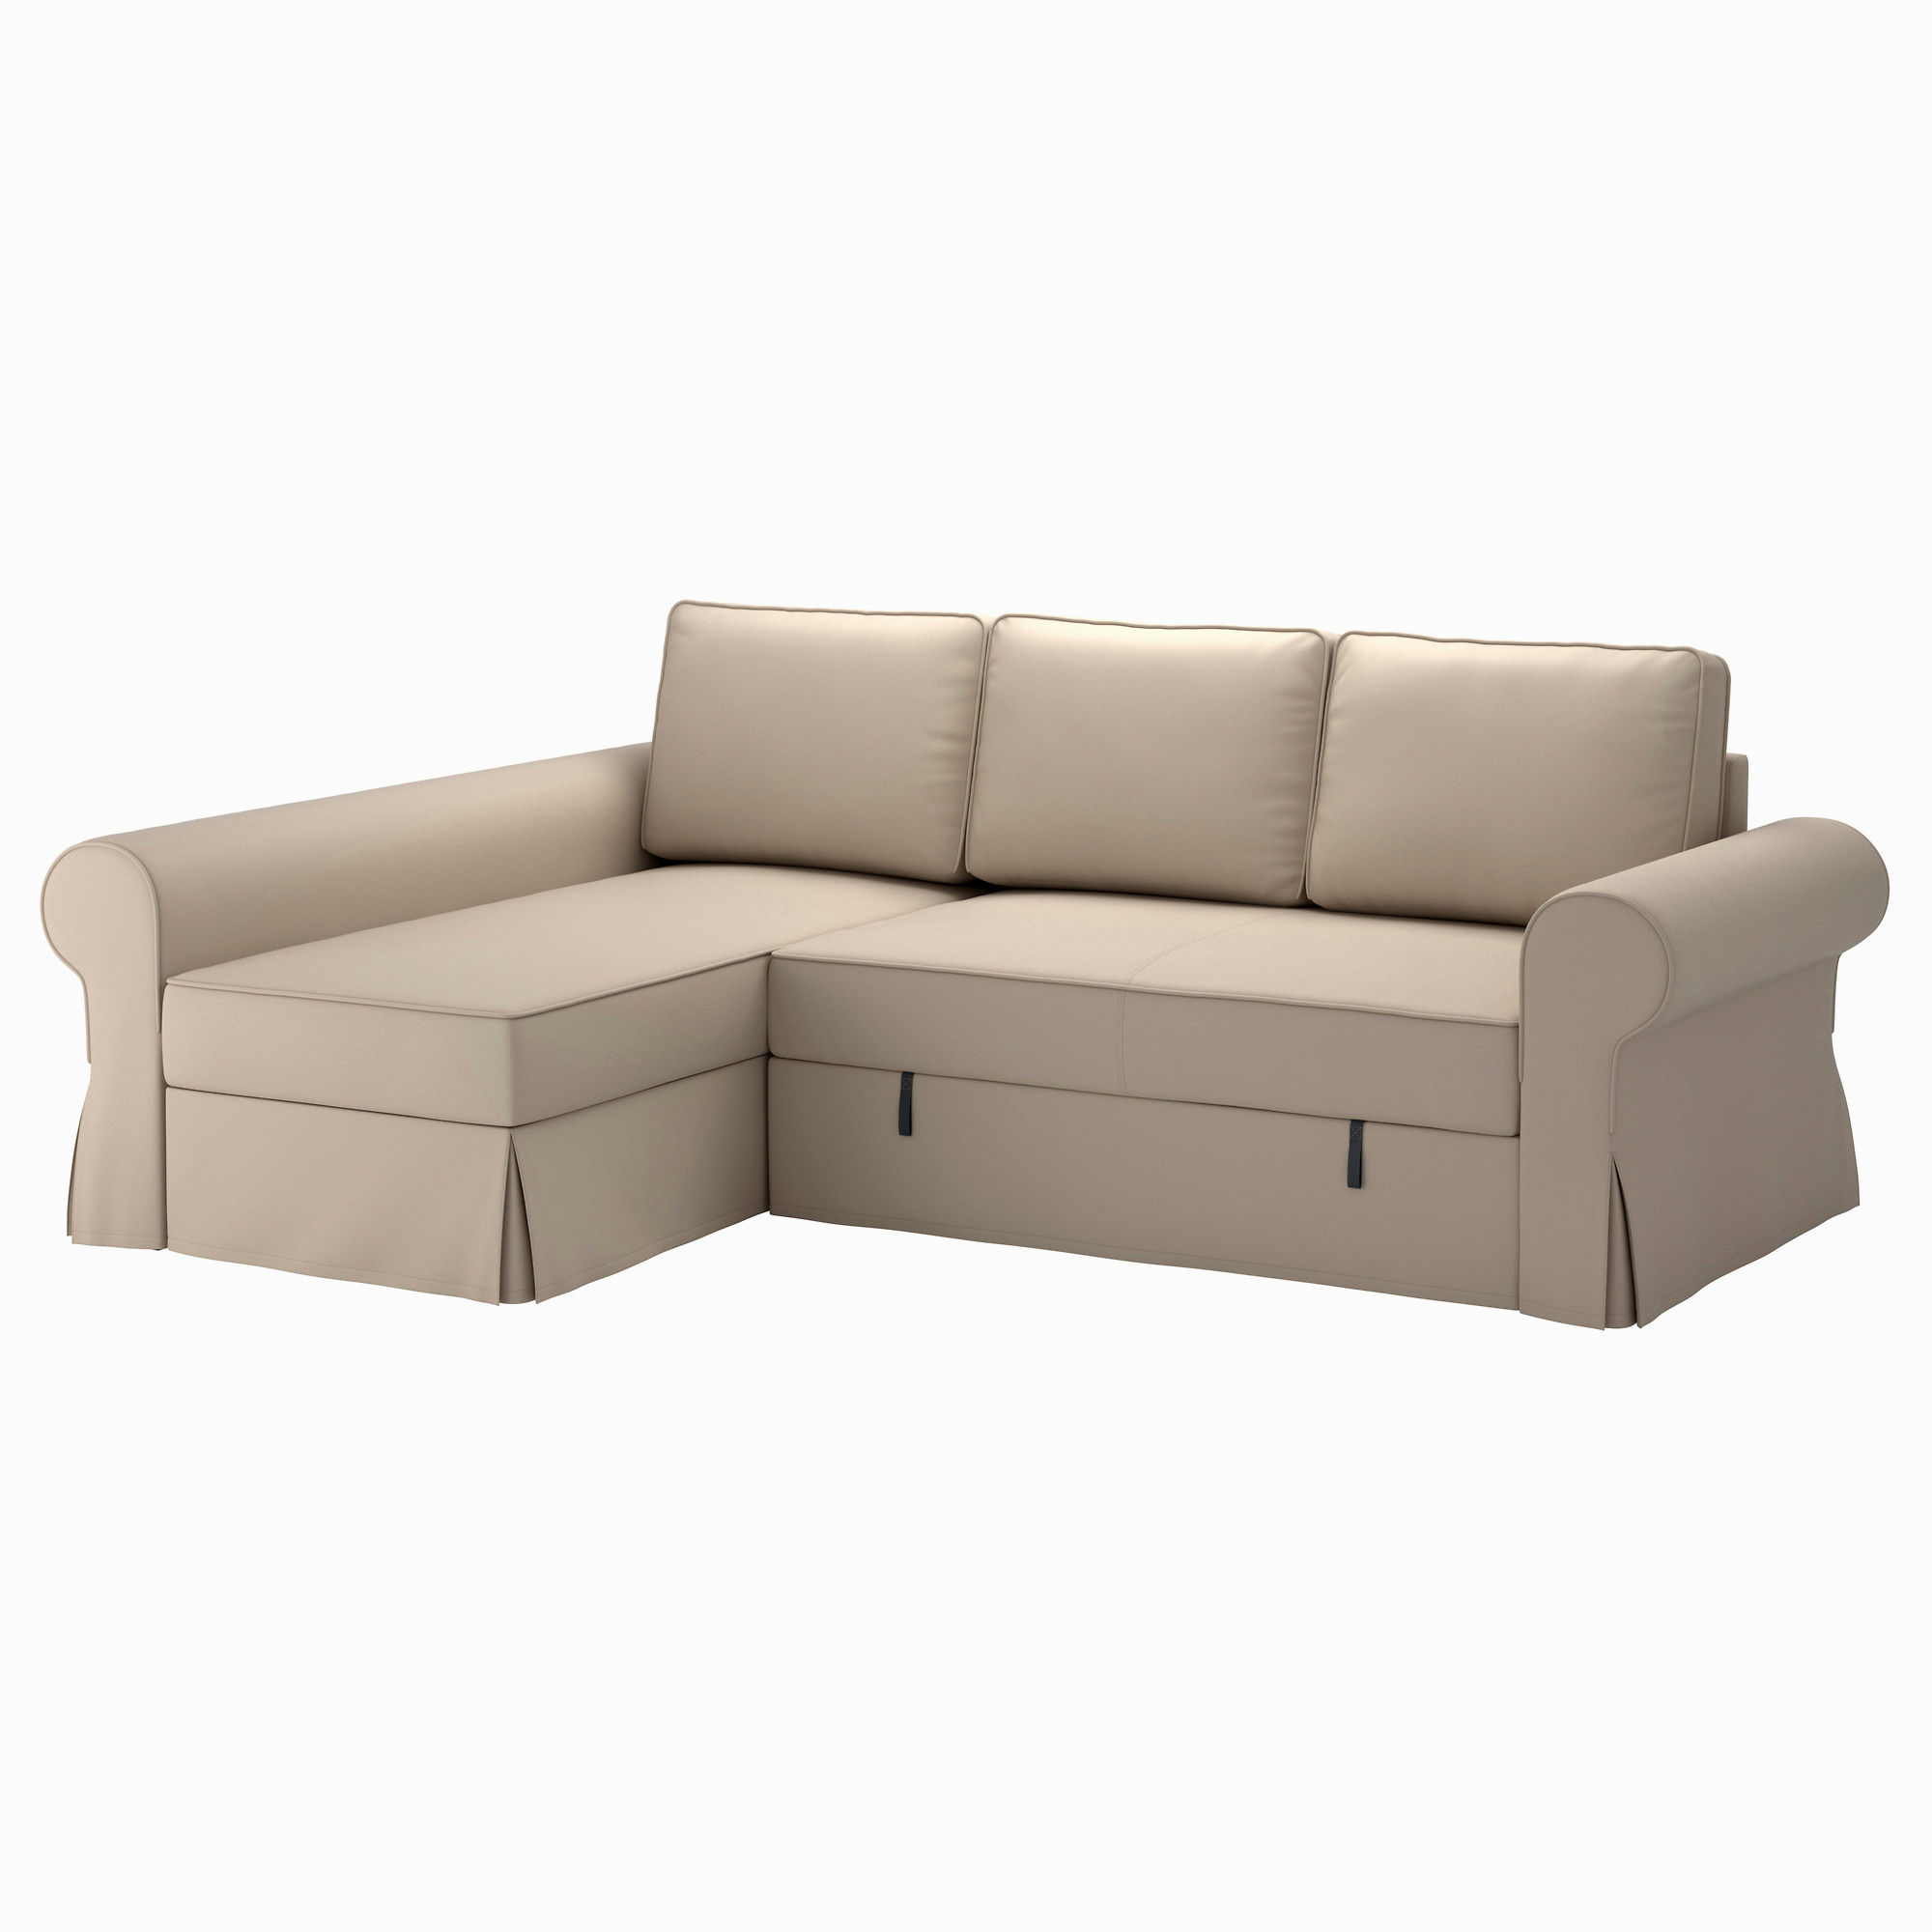 Designer Leather Sofas For Sale Sensational Leather Sofa Bed Sale Online Modern Sofa